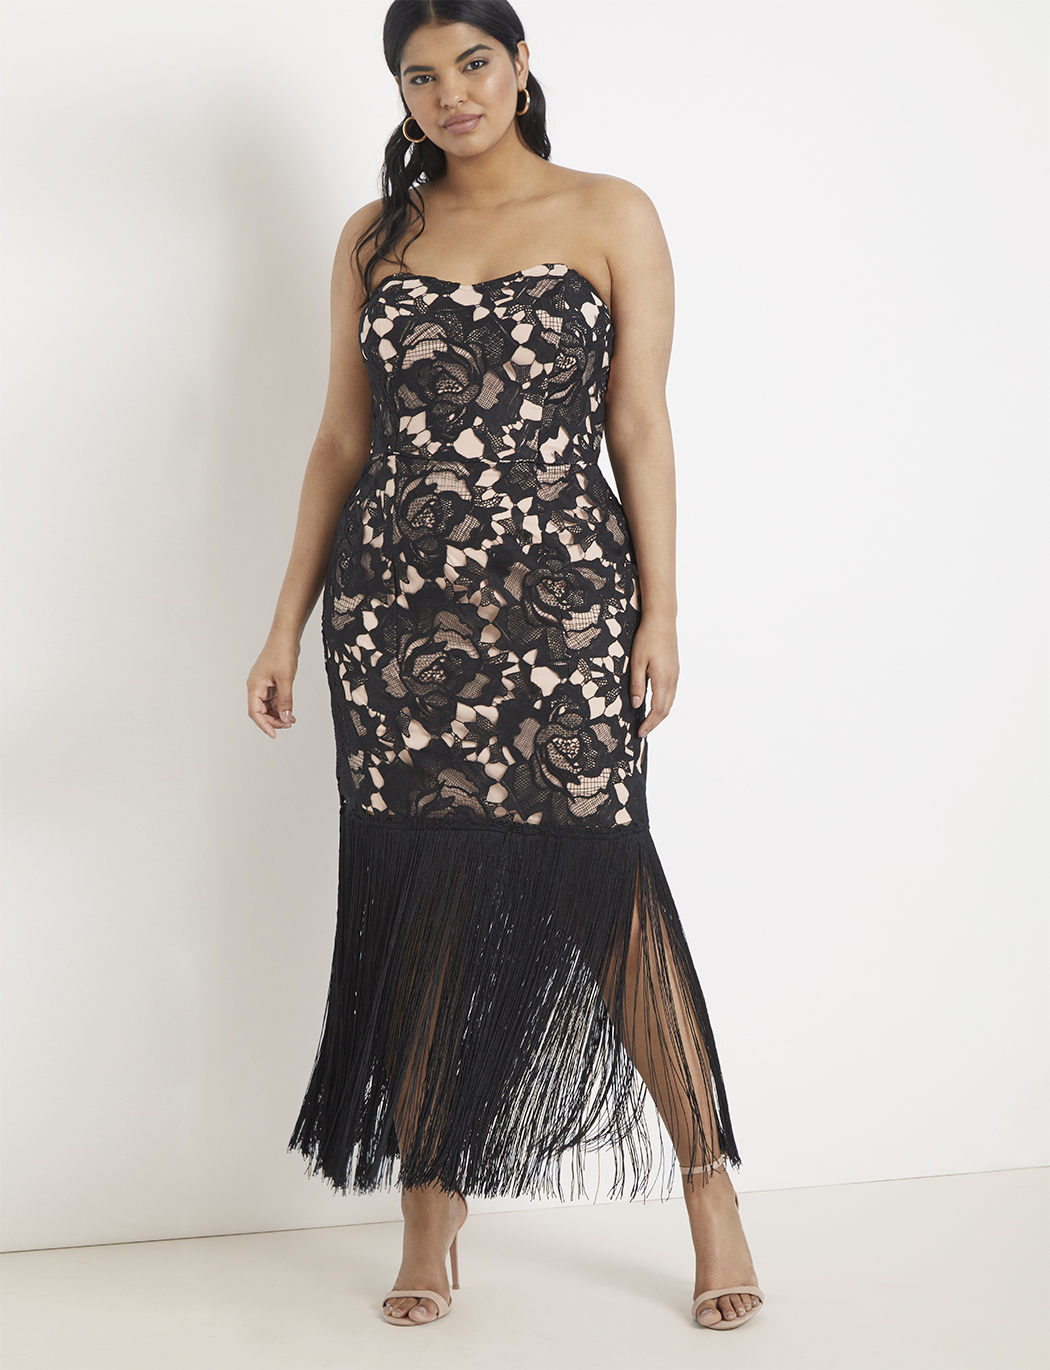 Strapless Lace and Fringe Dress